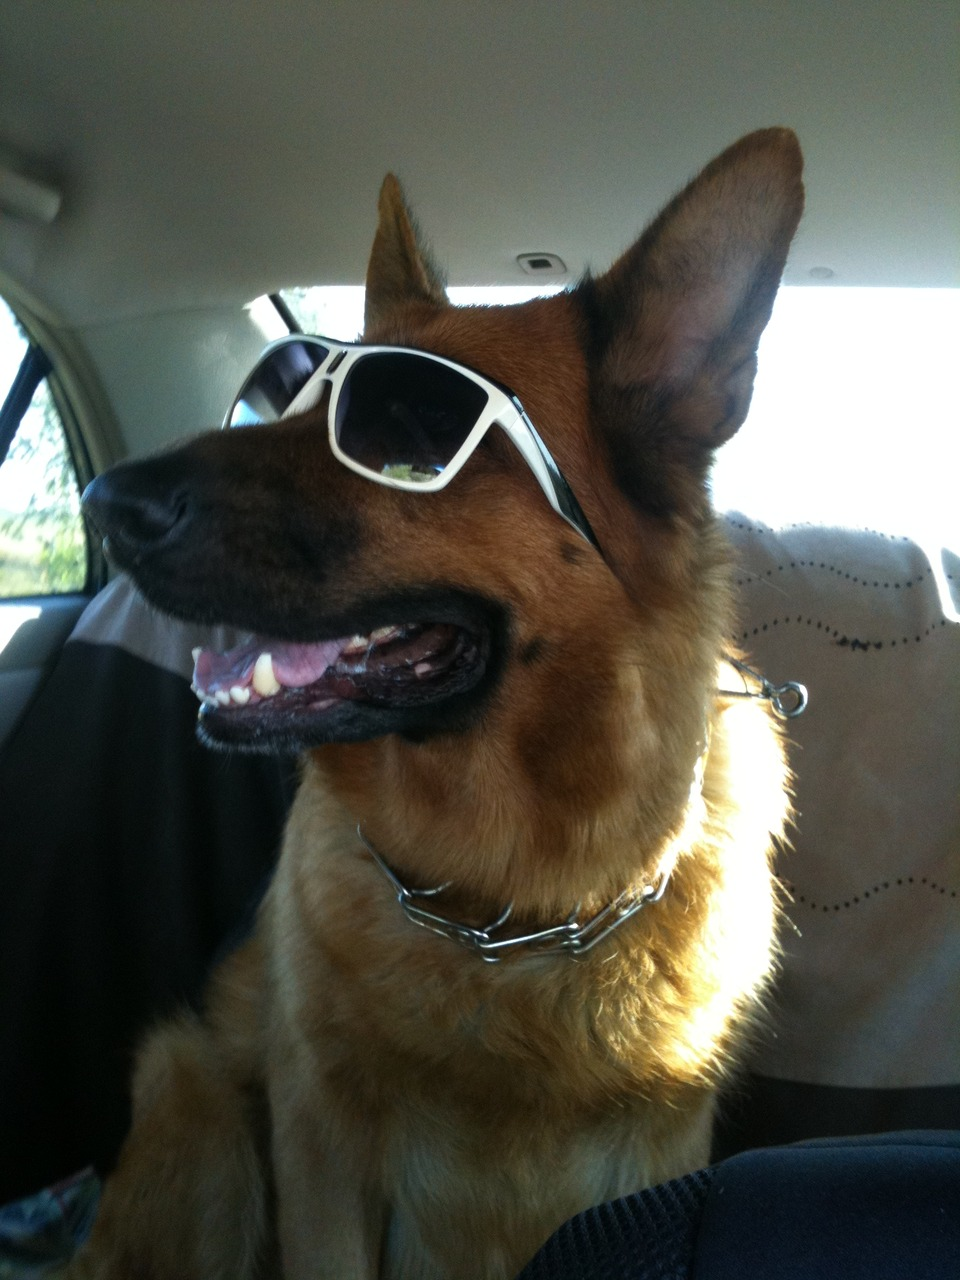 German shepherd wears glasses